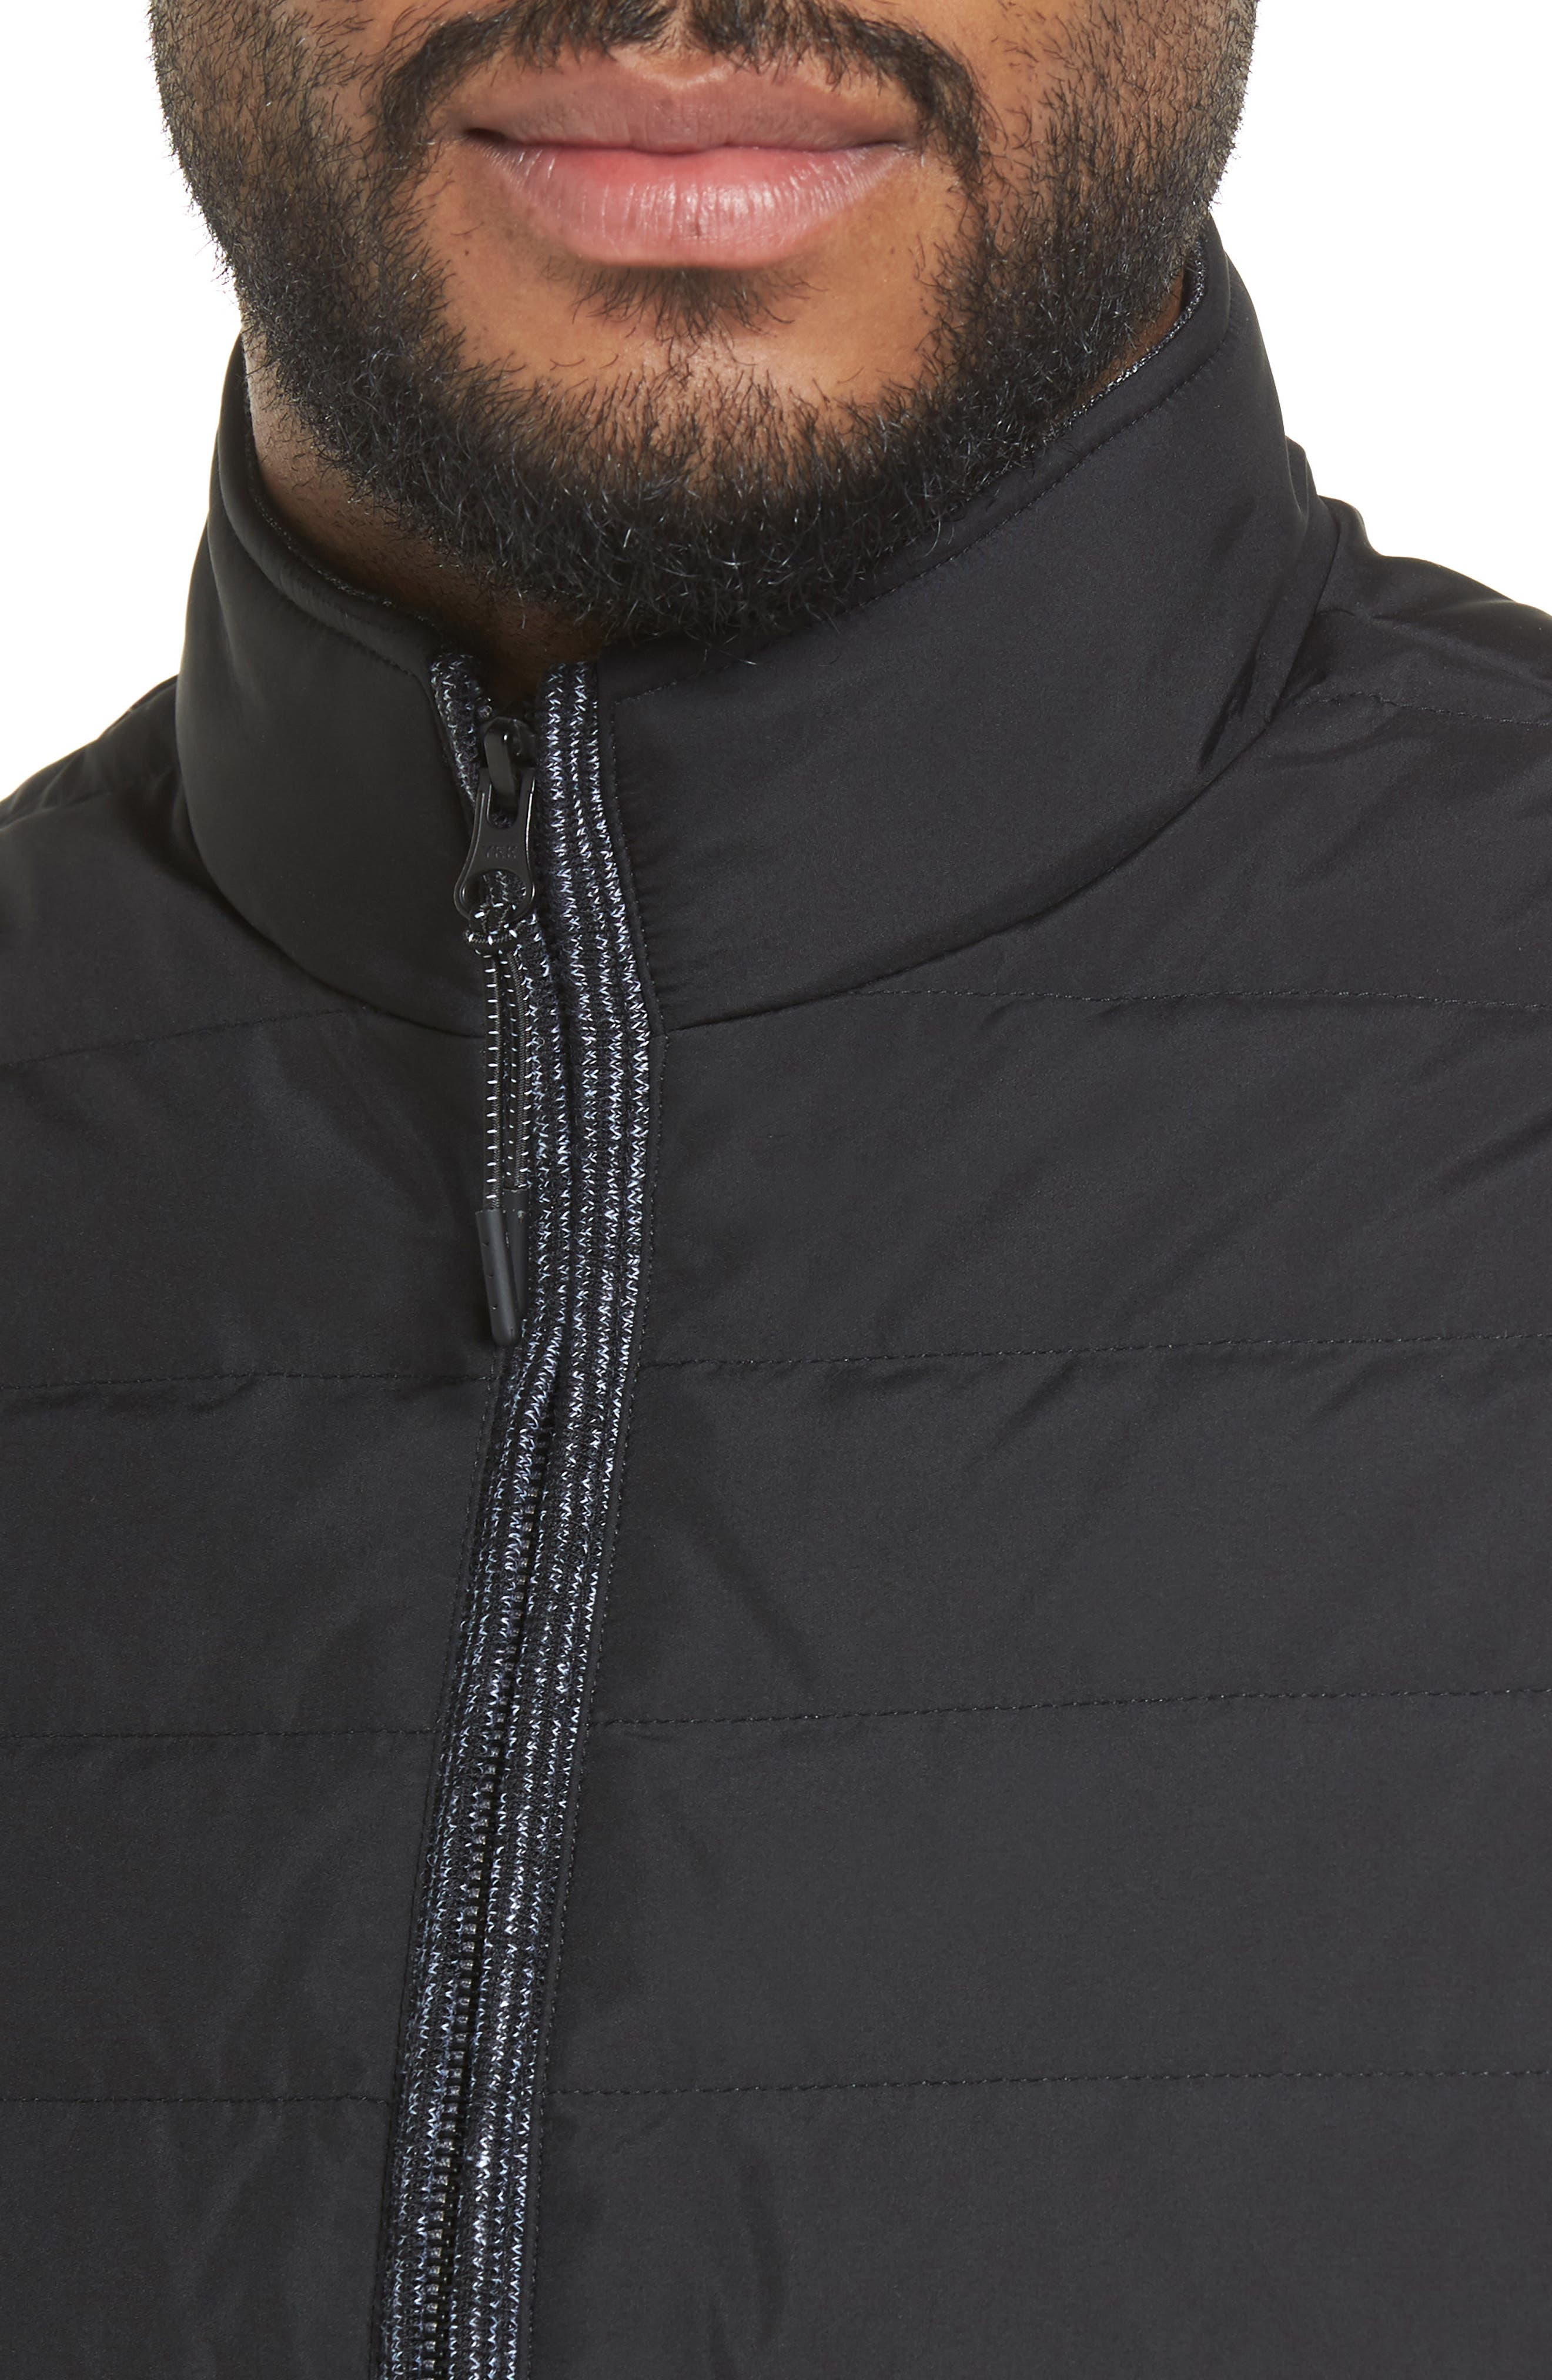 Jozeph Quilted Down Vest,                             Alternate thumbnail 3, color,                             Black